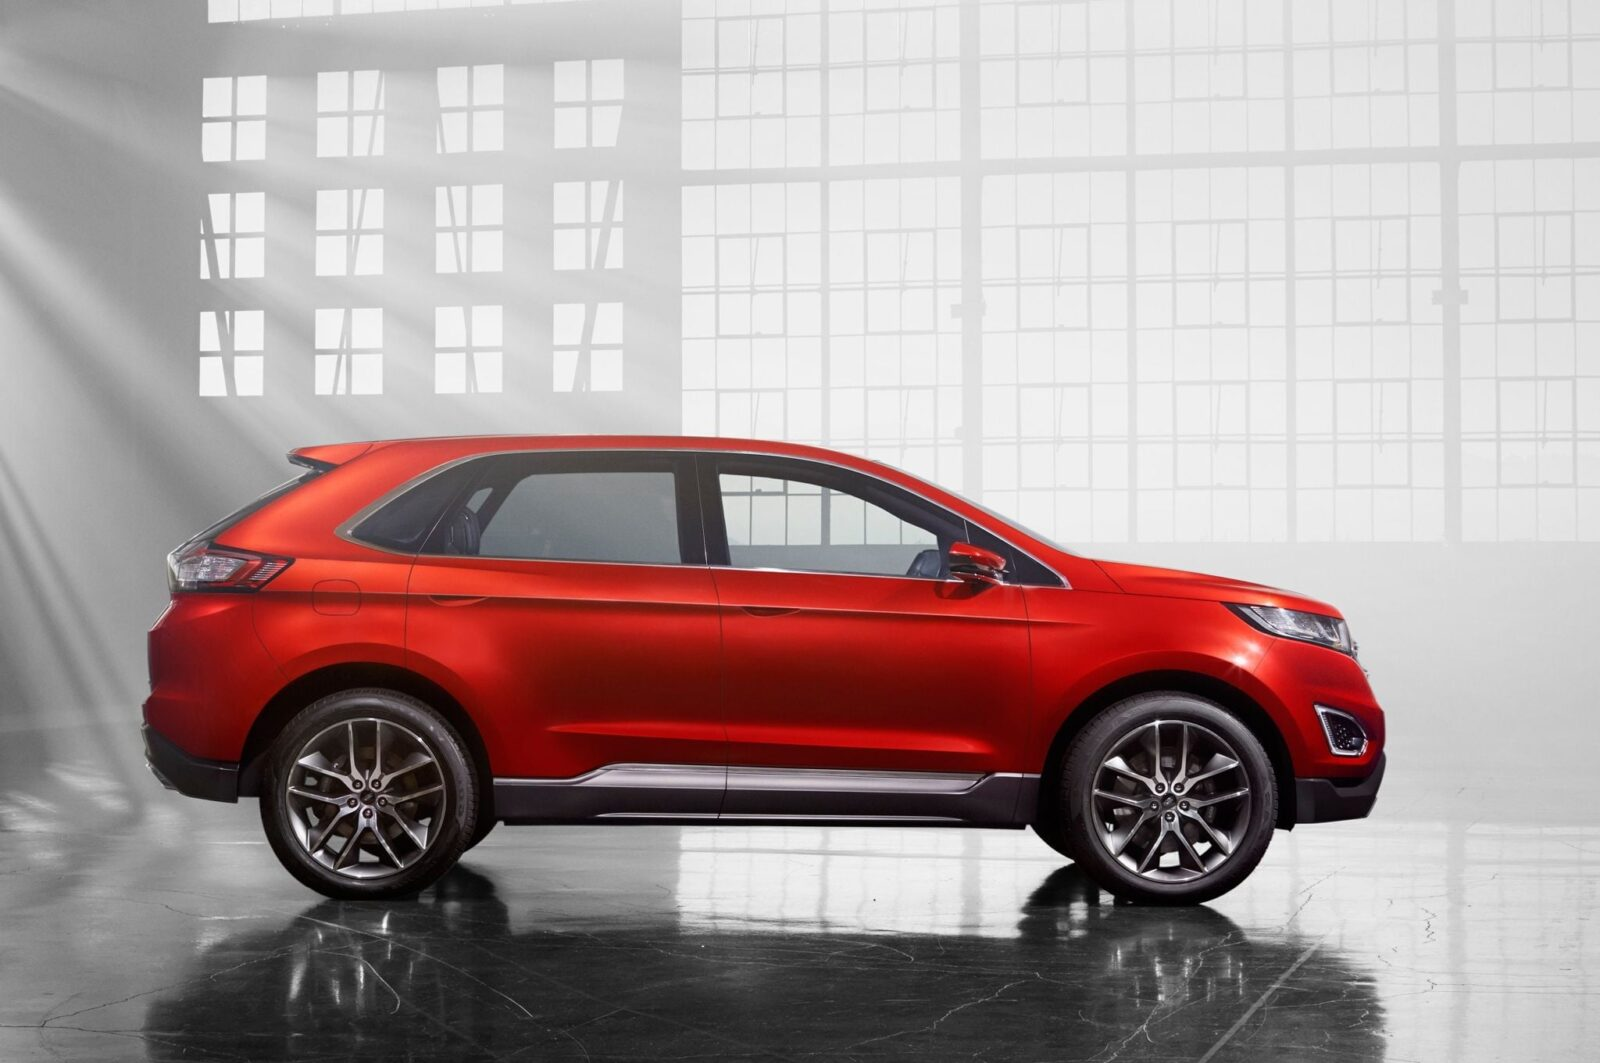 Best Image Of Ford Edge 2016 Side View